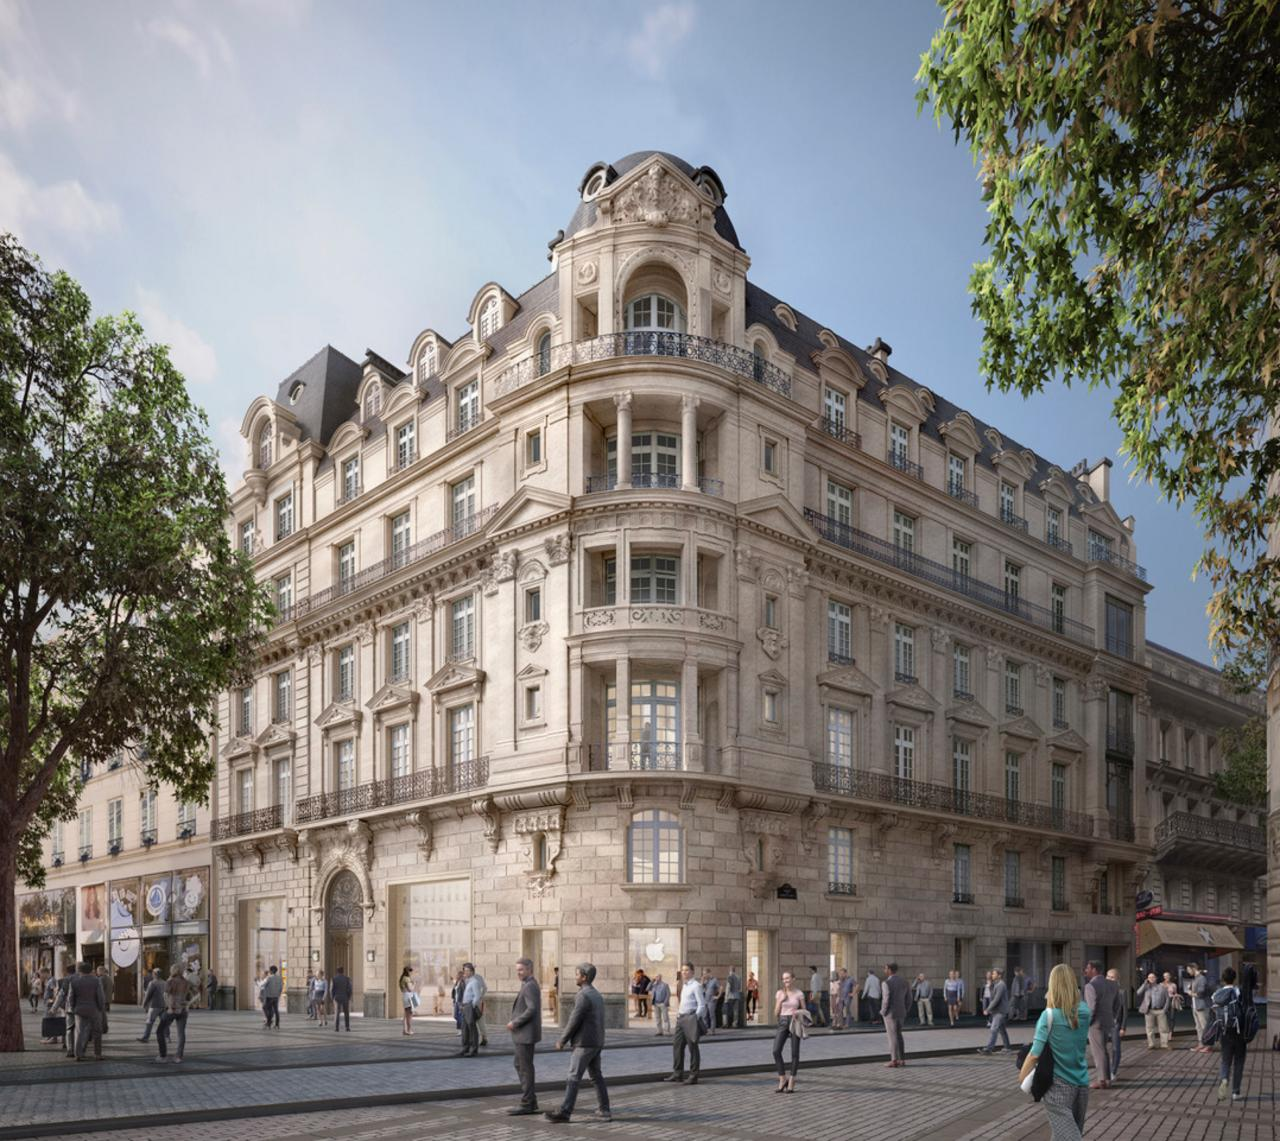 Apple will open a brand new flagship store in November on the Champs-Élysées in Paris, France